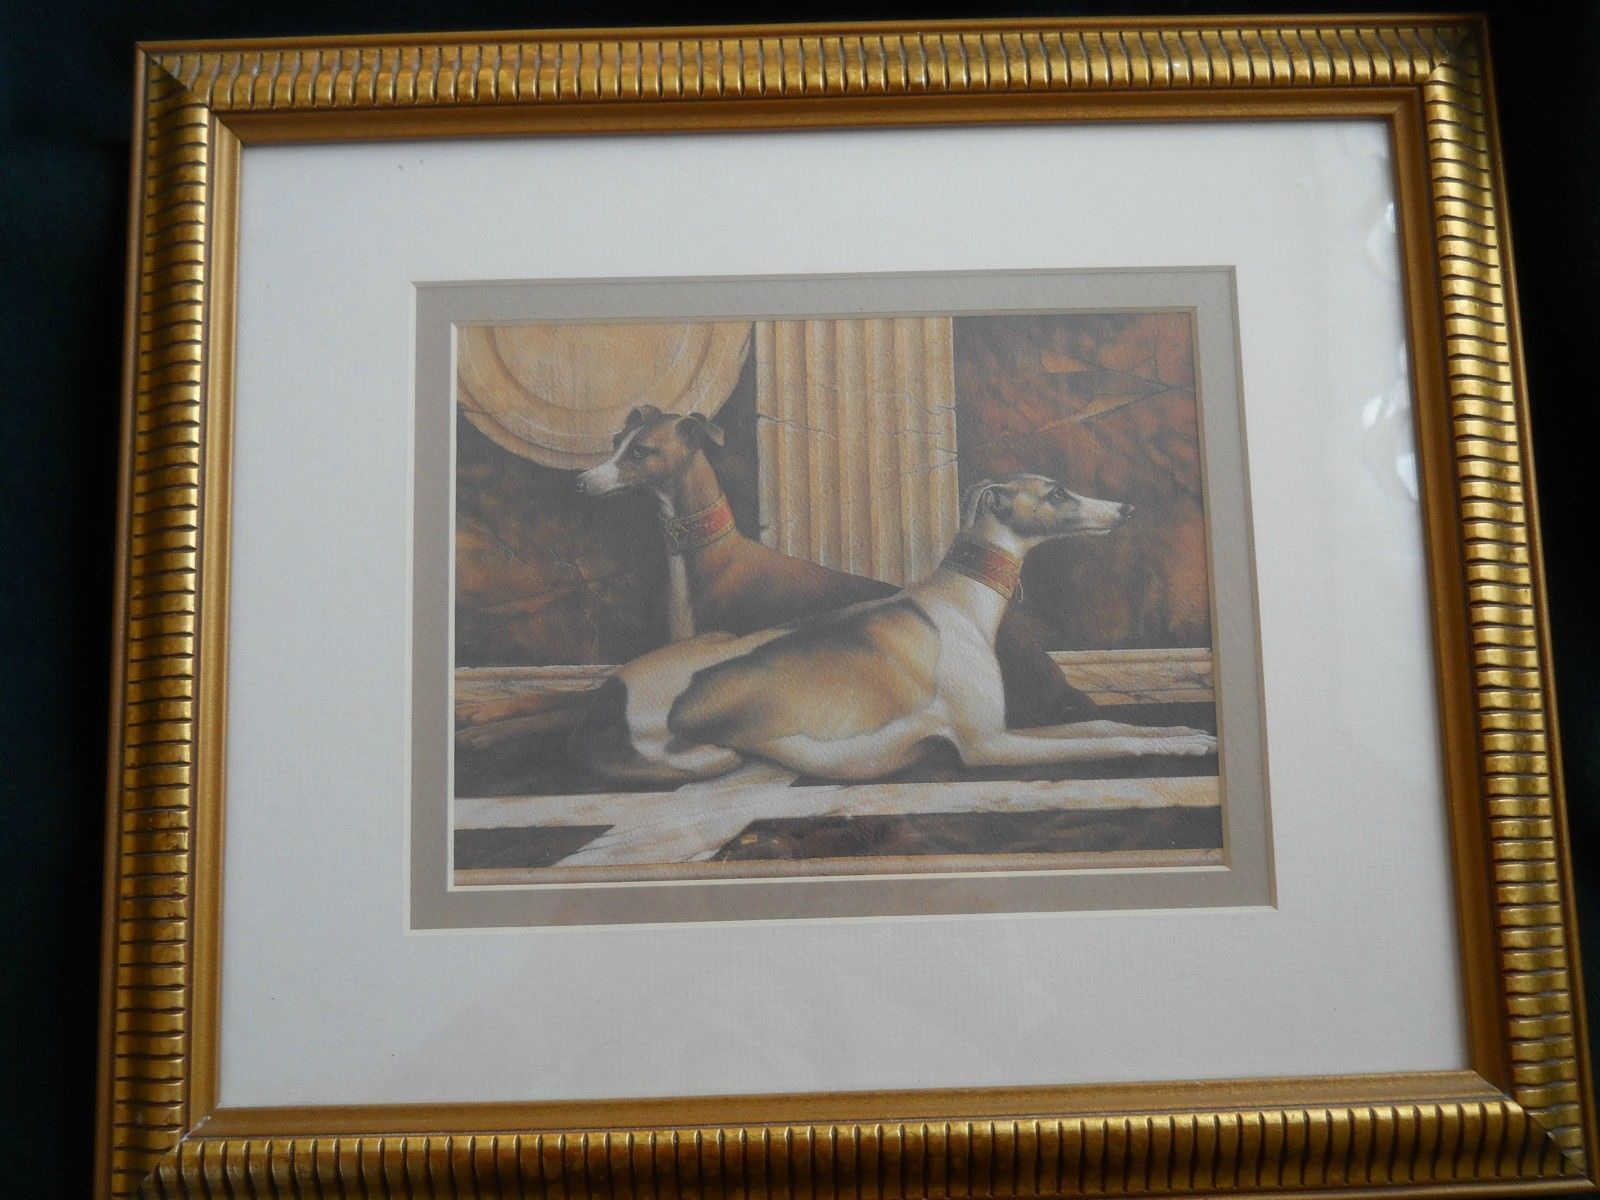 Greyhounds in 18th century elegant gold wood frame 12 x 15 greyhounds in 18th century elegant gold wood frame 12 x 15 vollherbst jeuxipadfo Gallery